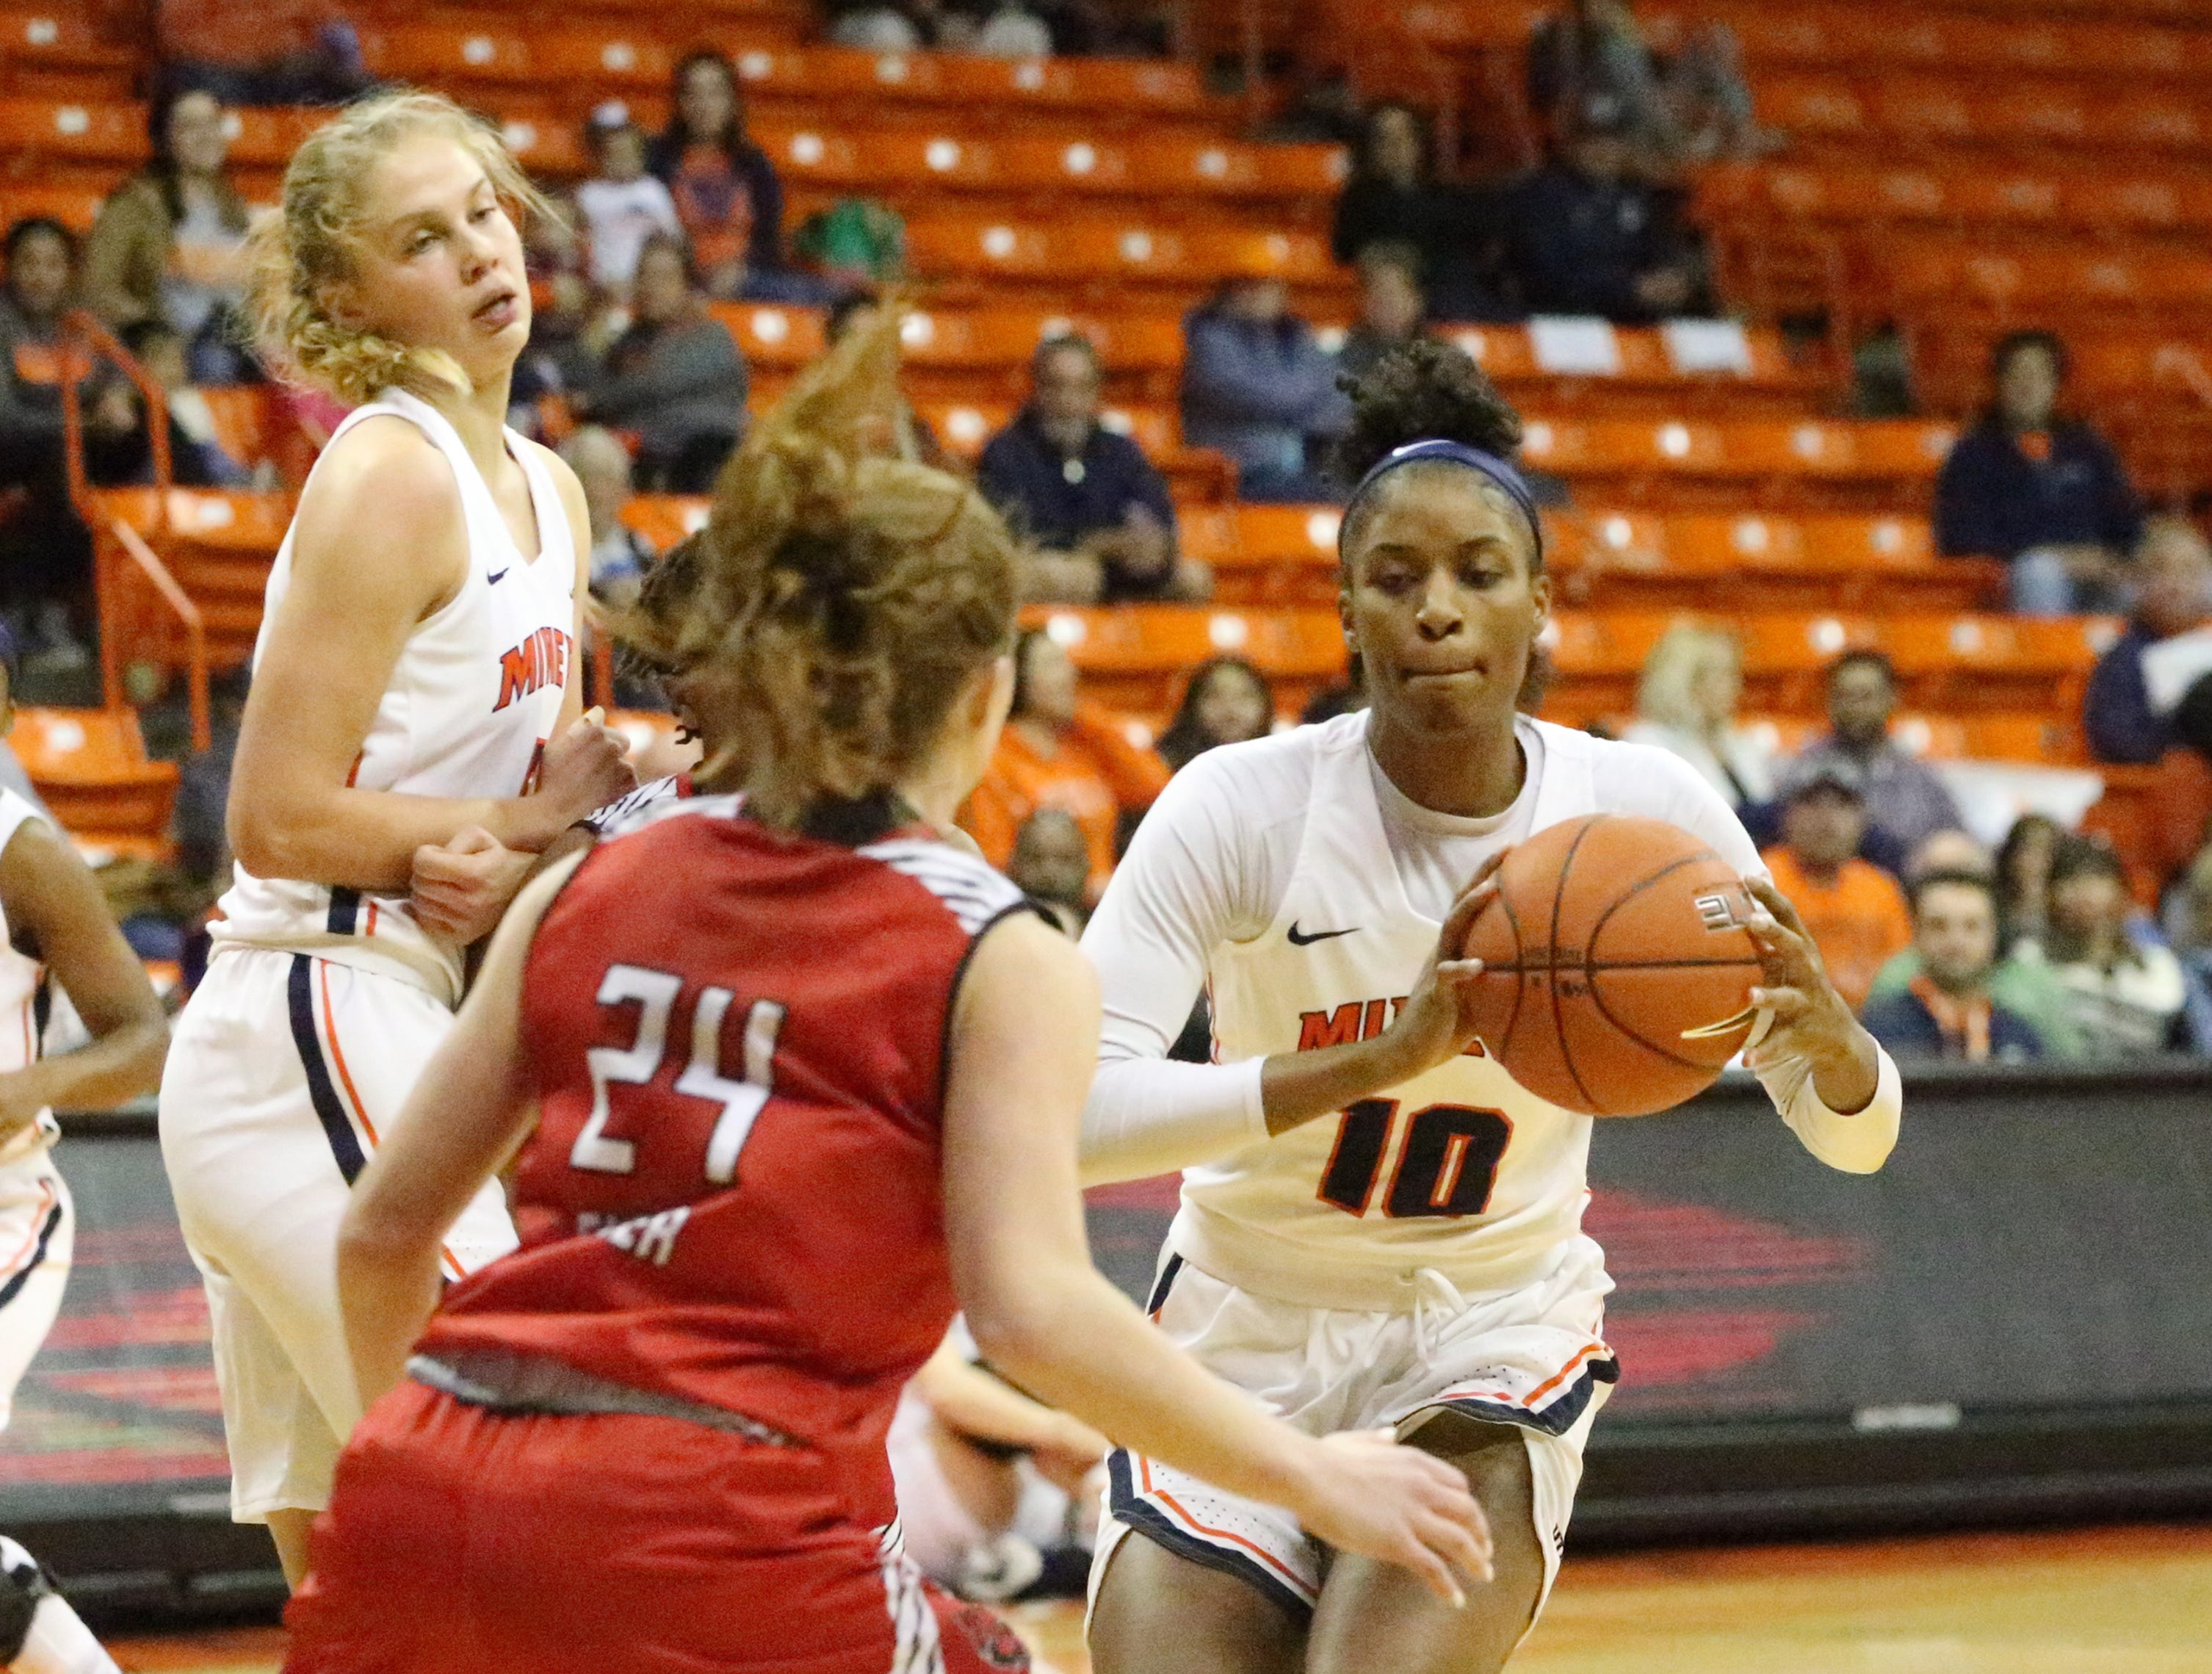 Jade Rochelle, 10, of UTEP passes the ball to a teammate in the Don Haskins Center.